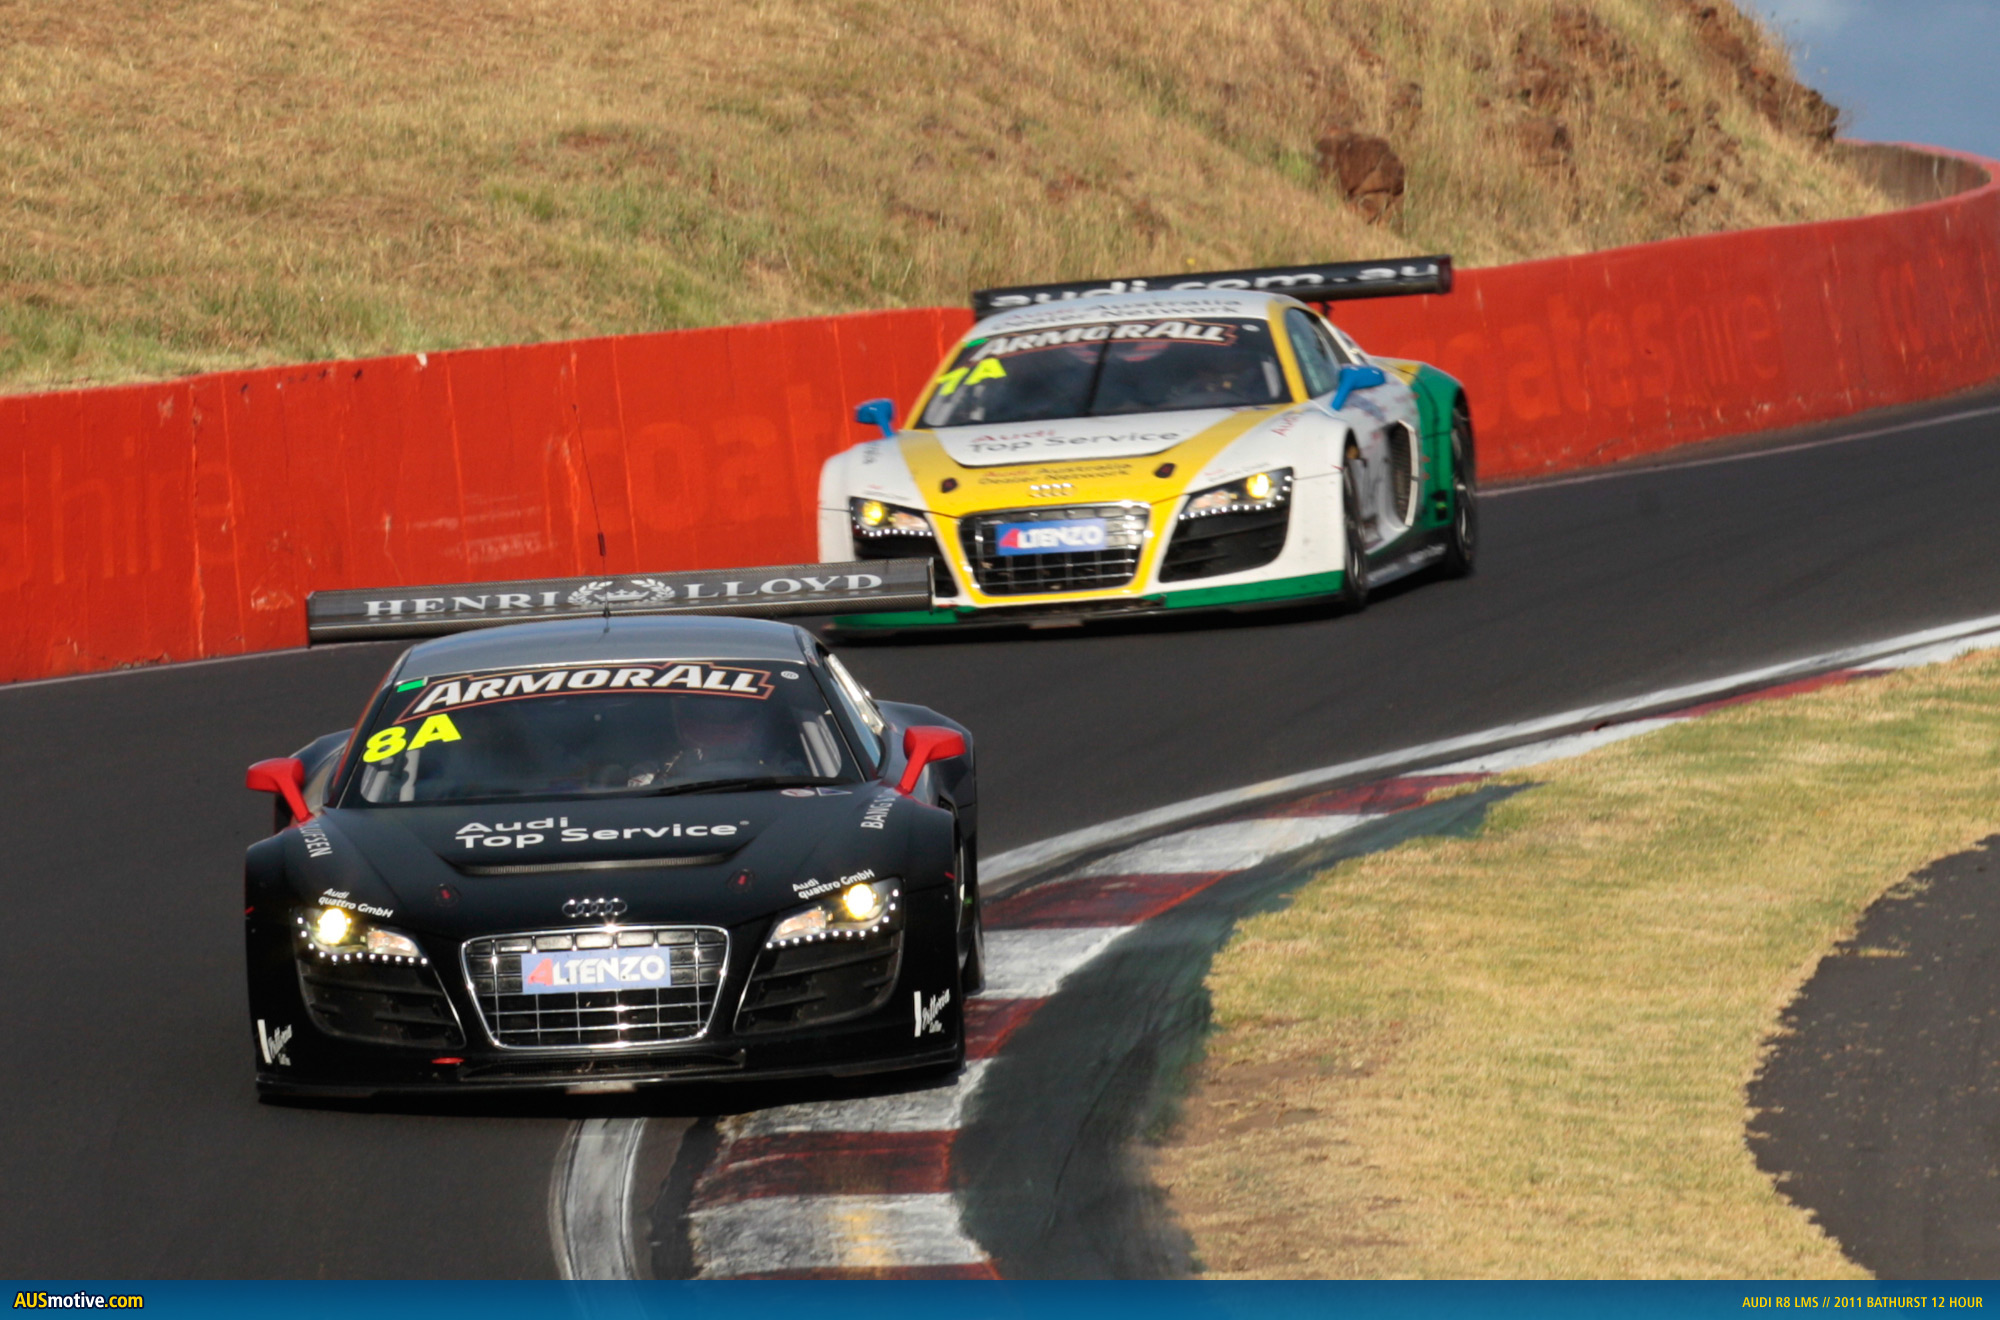 2000x1320 > Bathurst 12 Hour Endurance Wallpapers